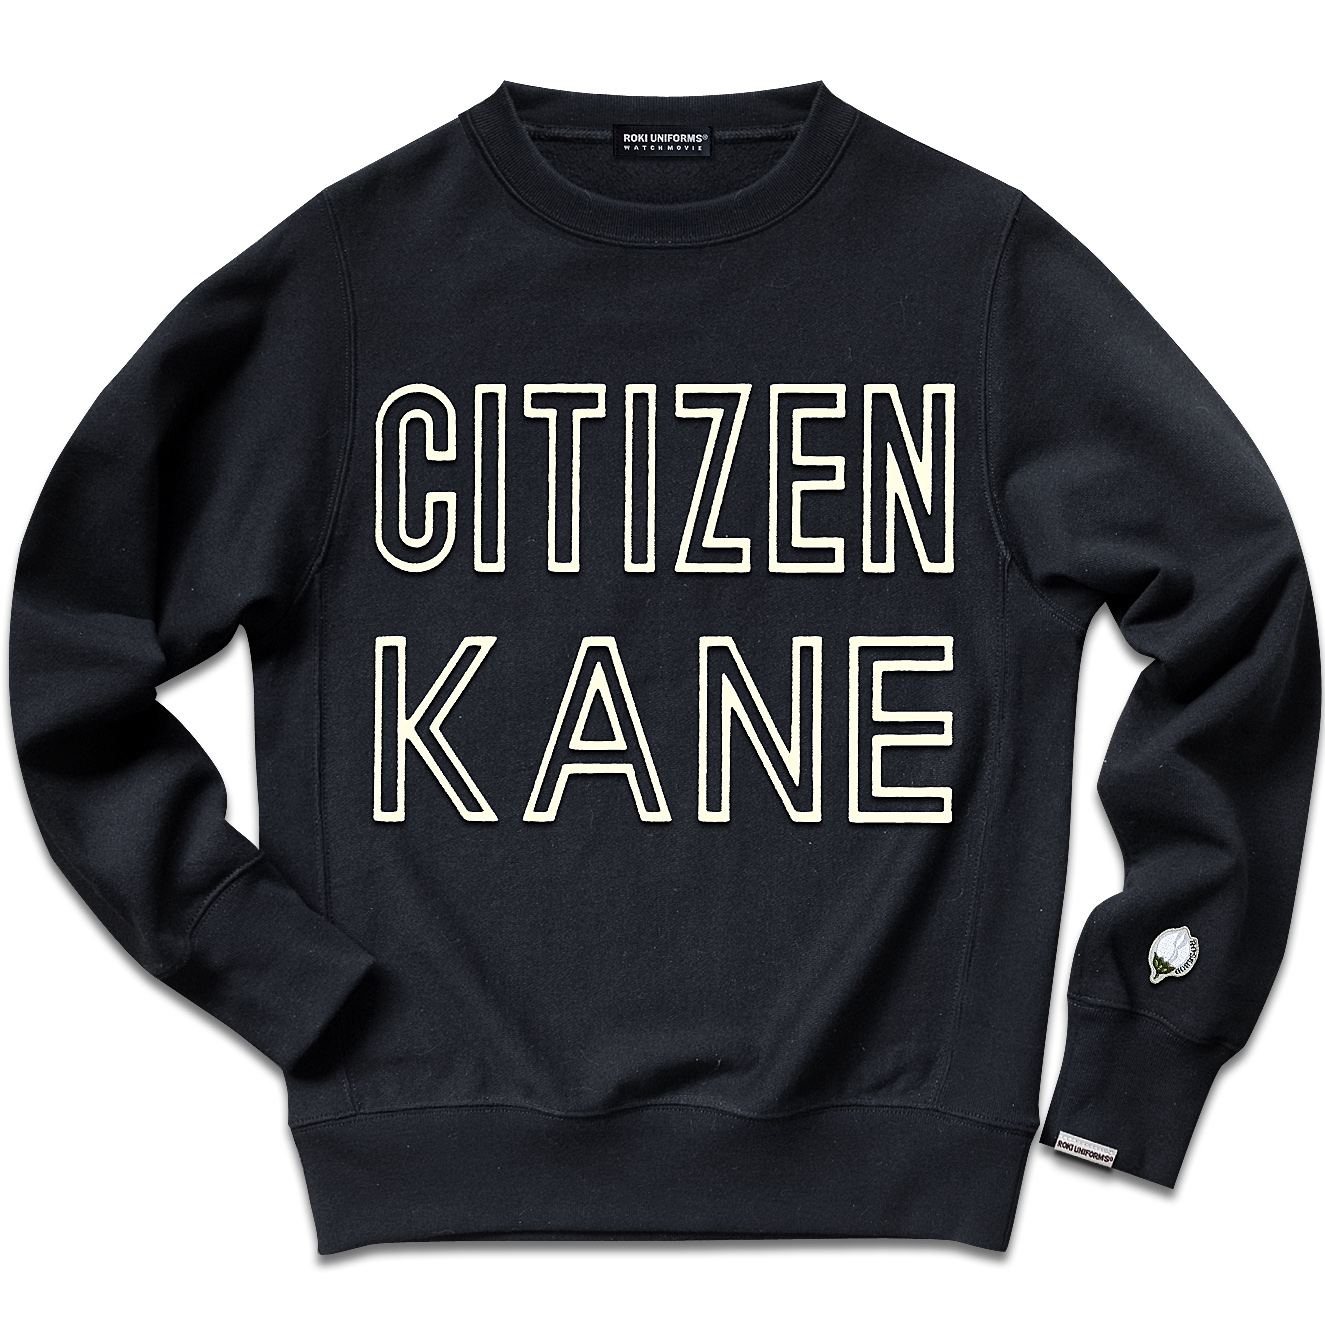 CITIZEN KANE SWEAT SHIRTSb